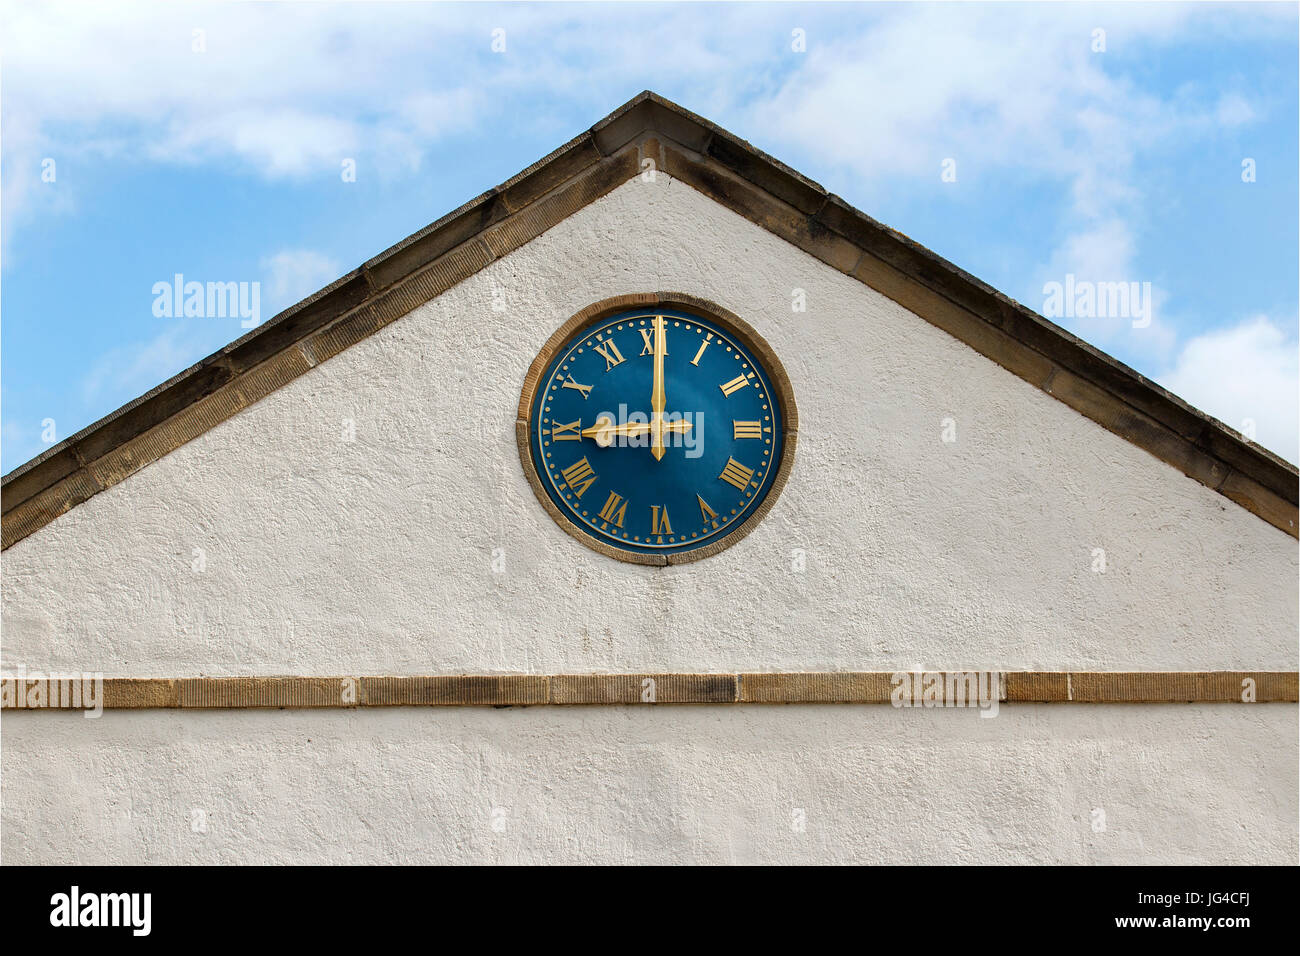 Town Hall Clock Face - Stock Image